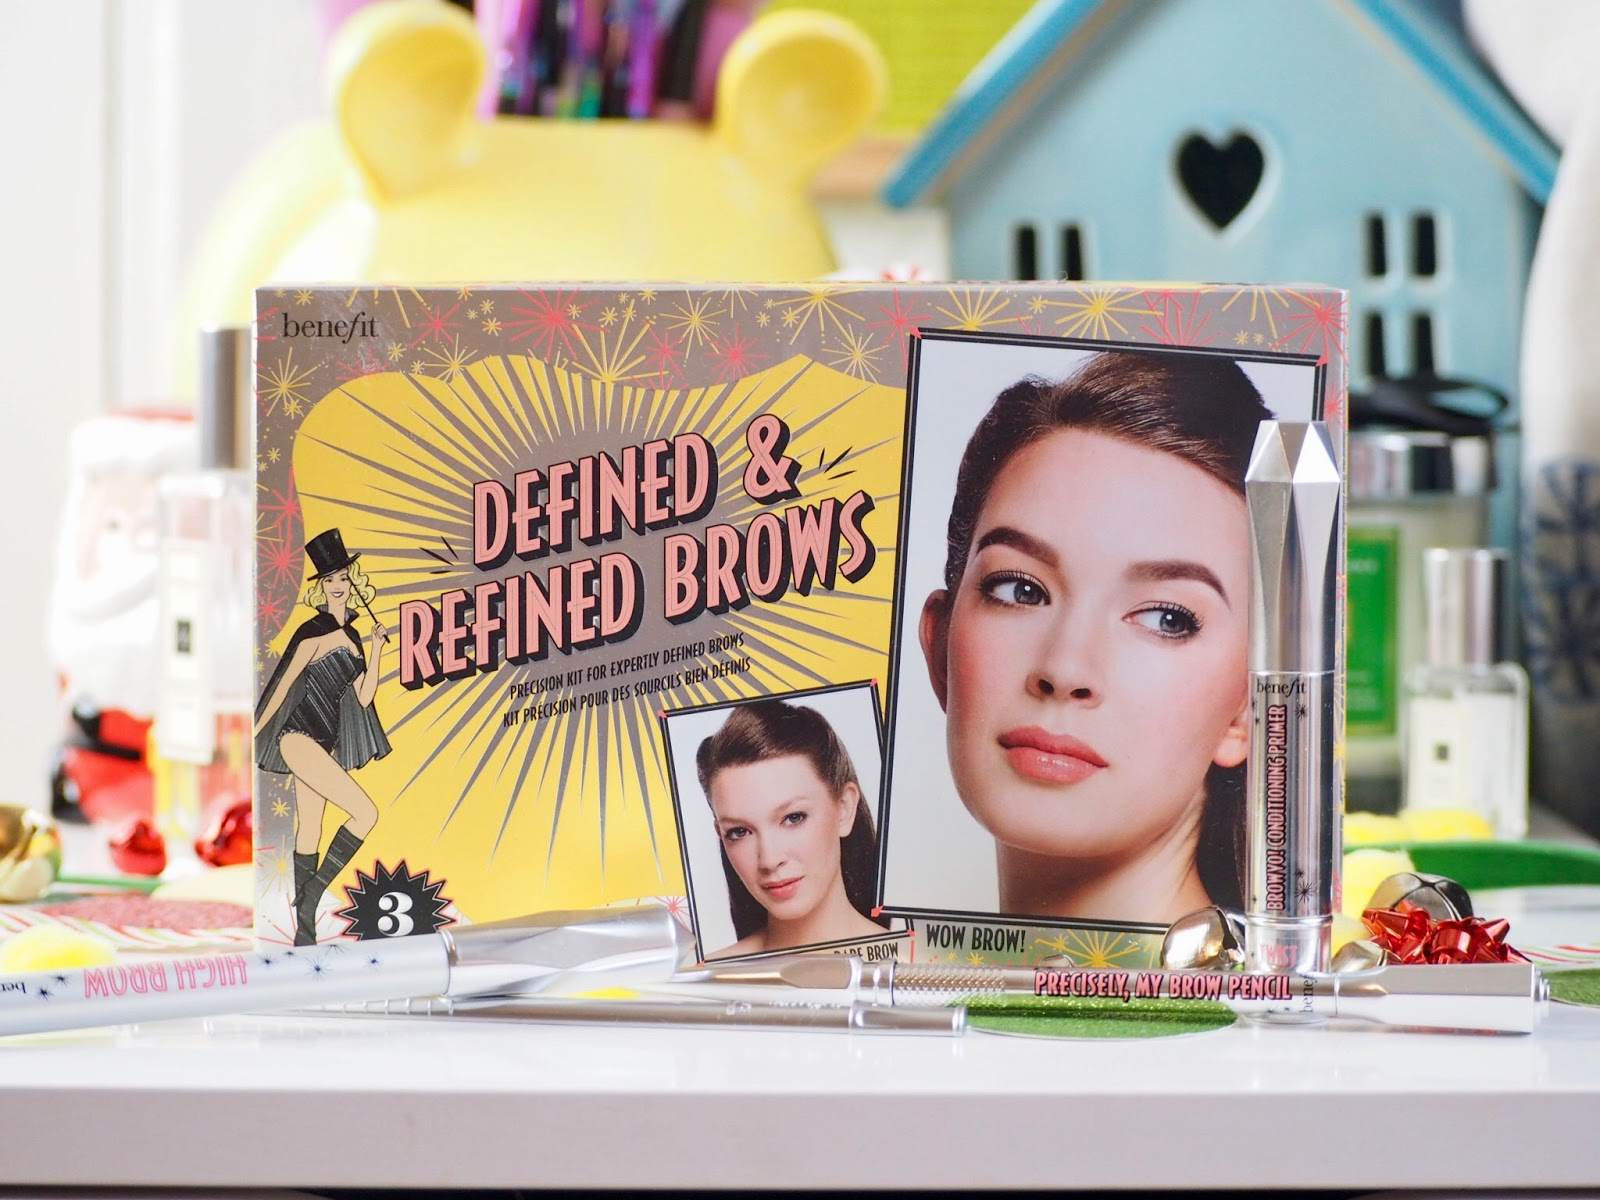 World Duty Free: Benefit Defined & Refined Brows*